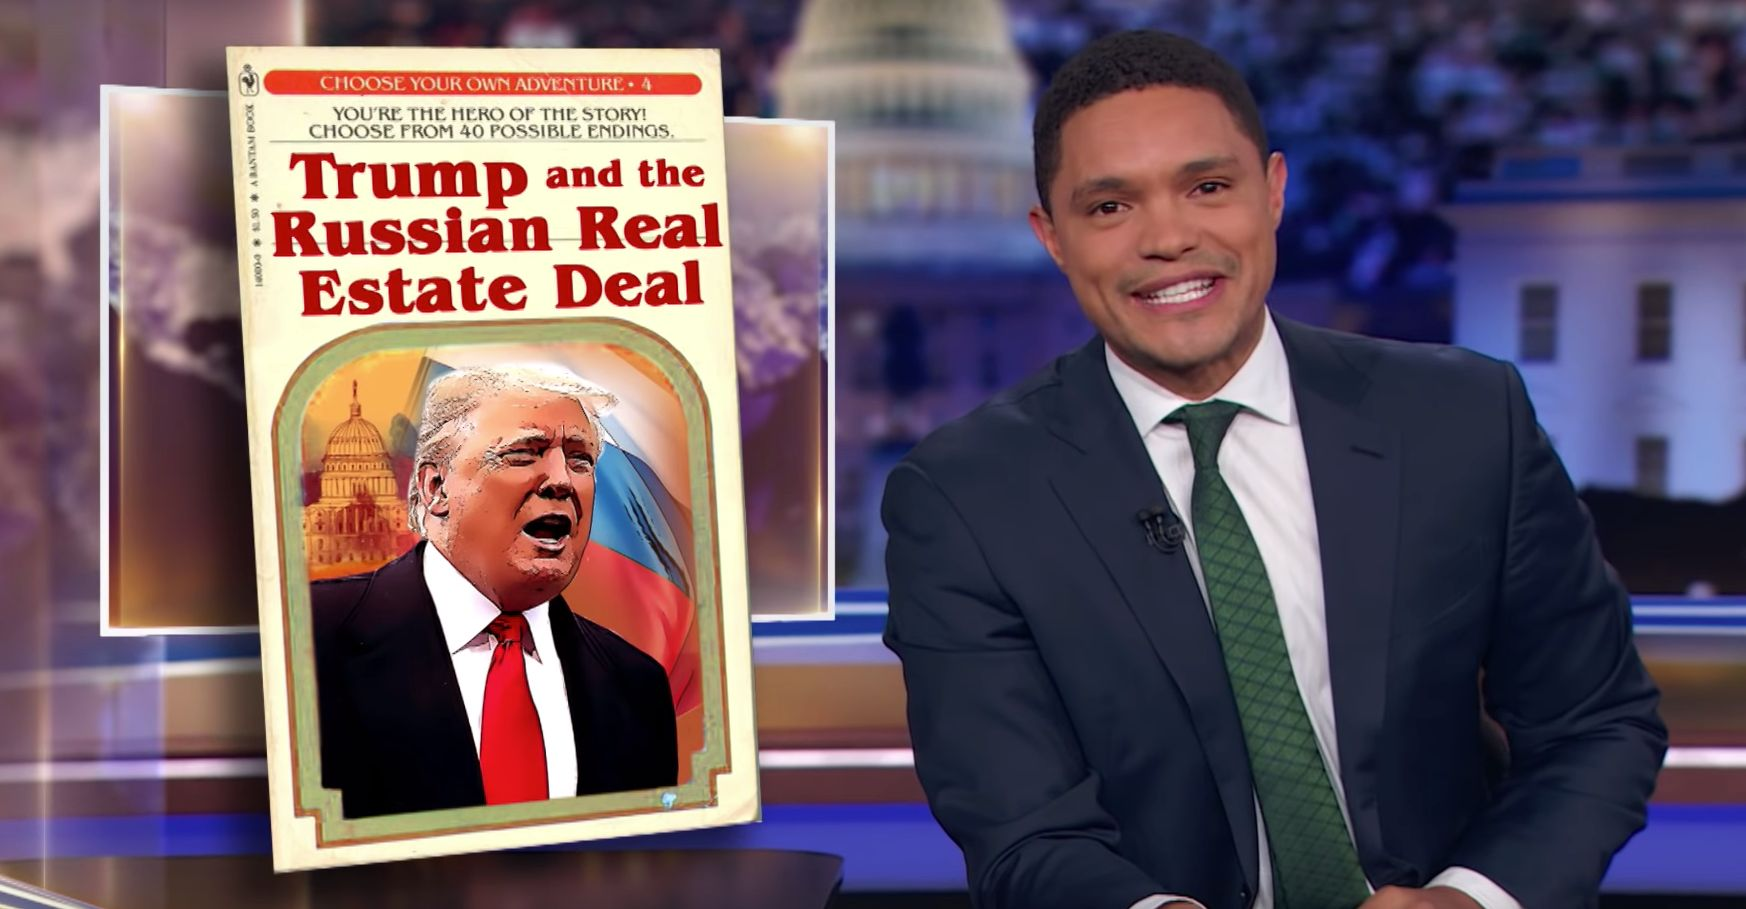 Trevor Noah Flips Out At Trump's Inadvertent 2016 Election